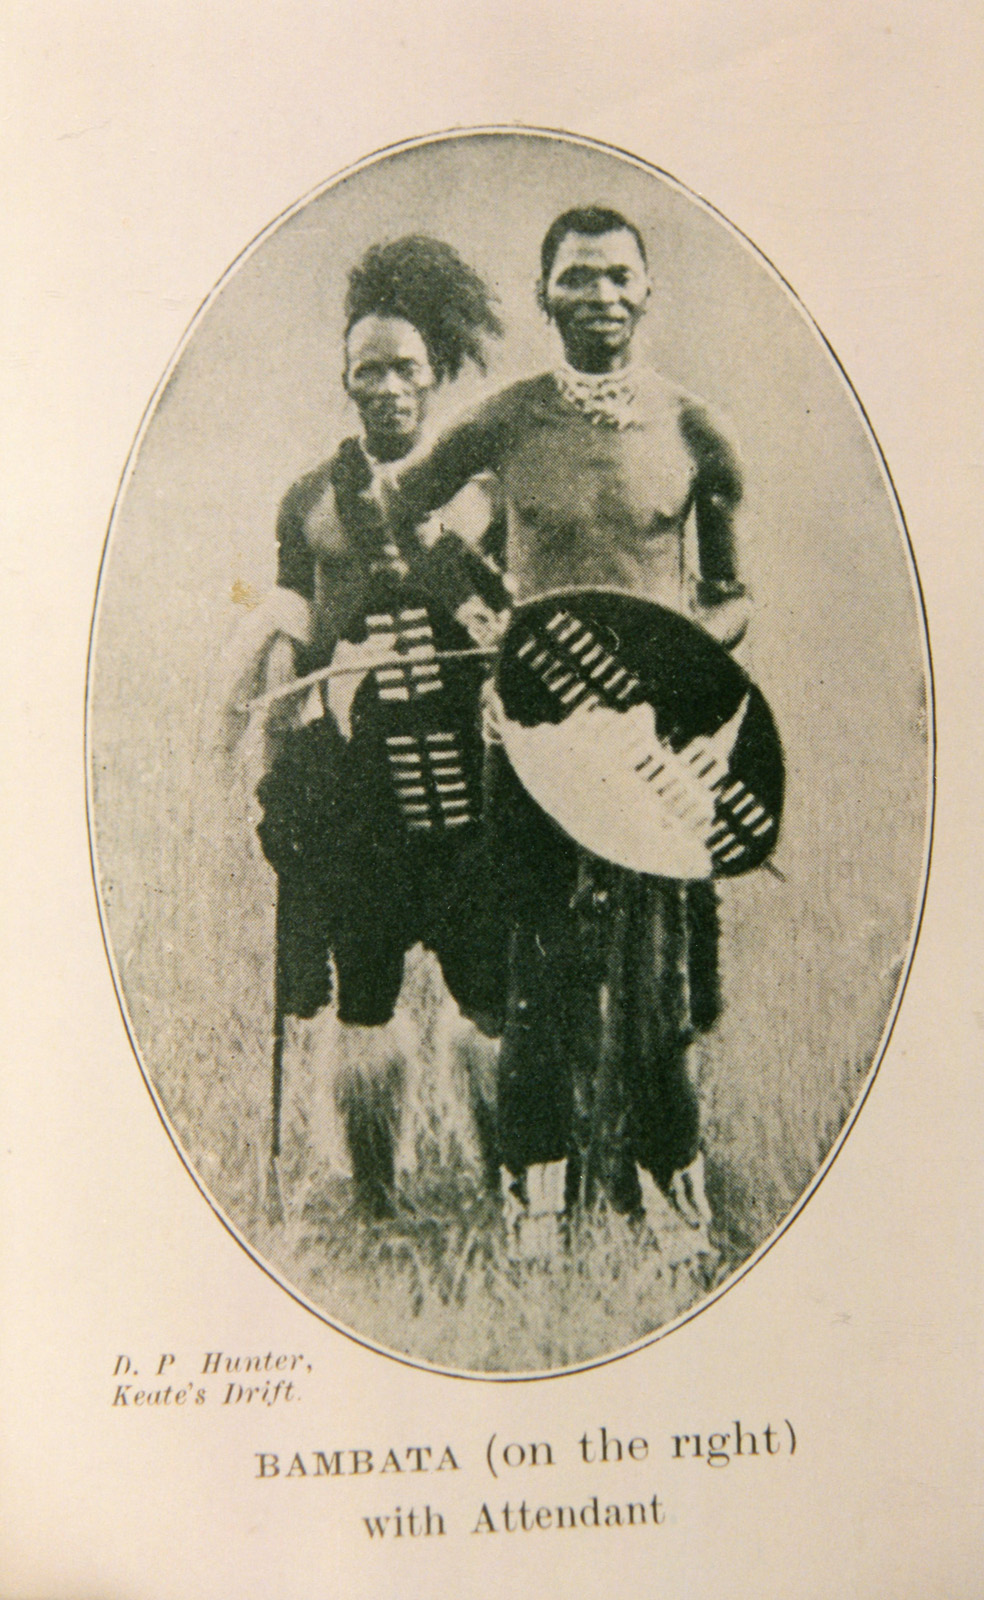 The rebel chief, Bambatha kaMancinza. Bambatha and his people were historically citizens of colonial Natal rather than the old Zulu kingdom but Bambatha deliberately tried to draw on the mystique and prestige of the old Zulu kings